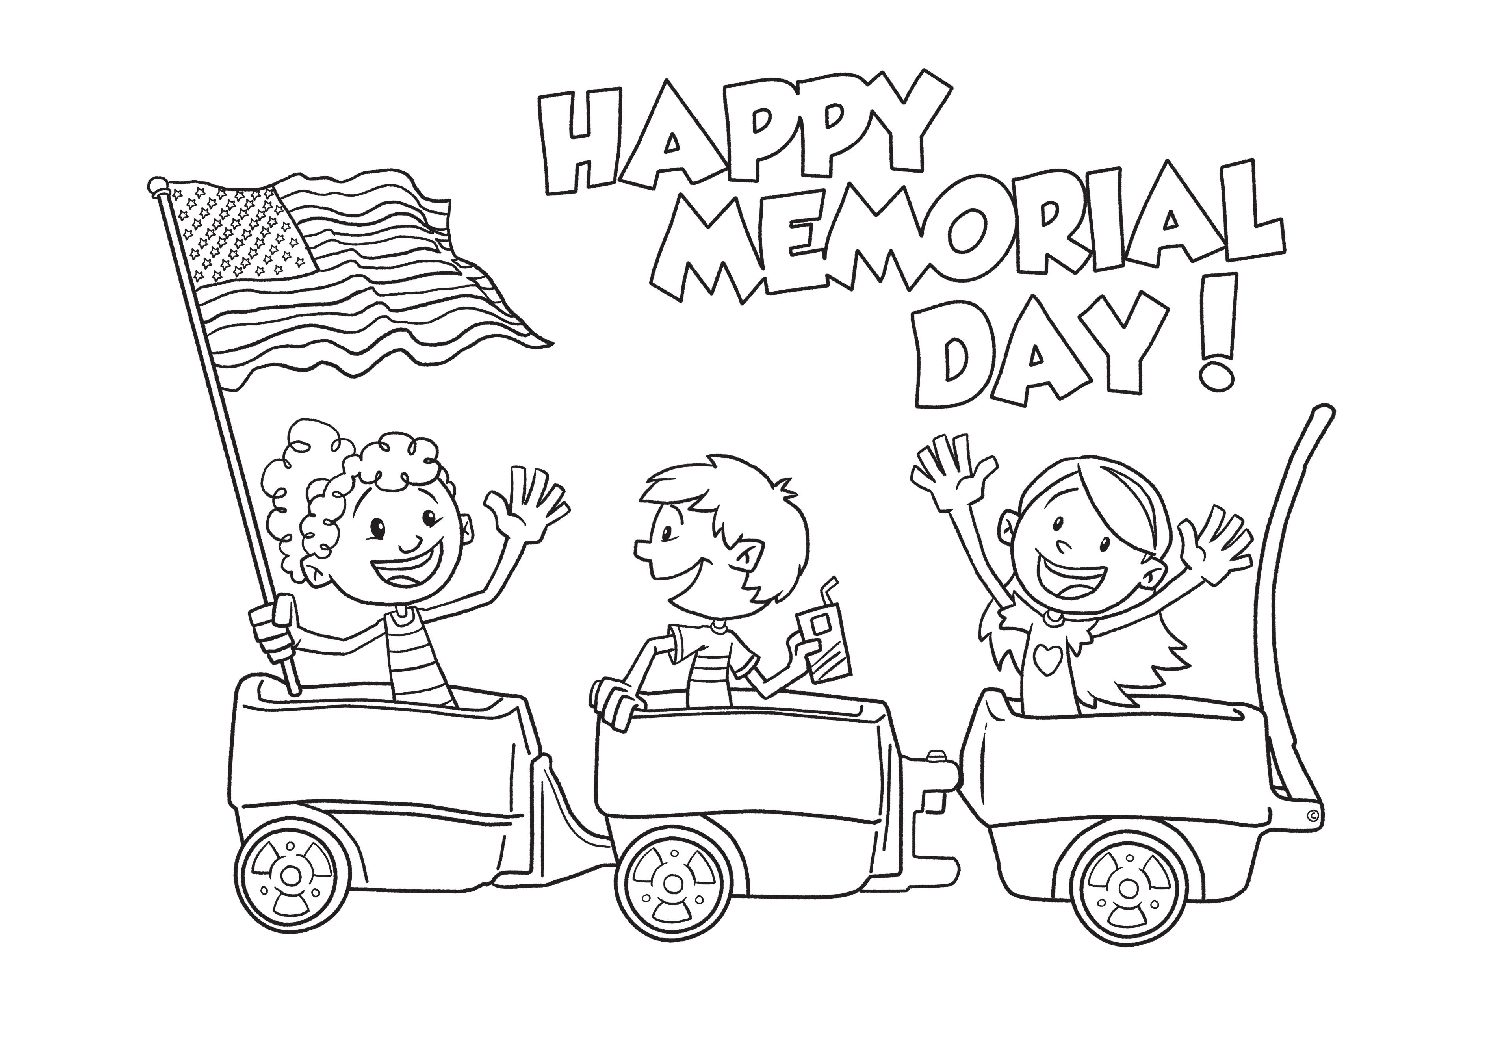 Happy Memorial Day Coloring Page